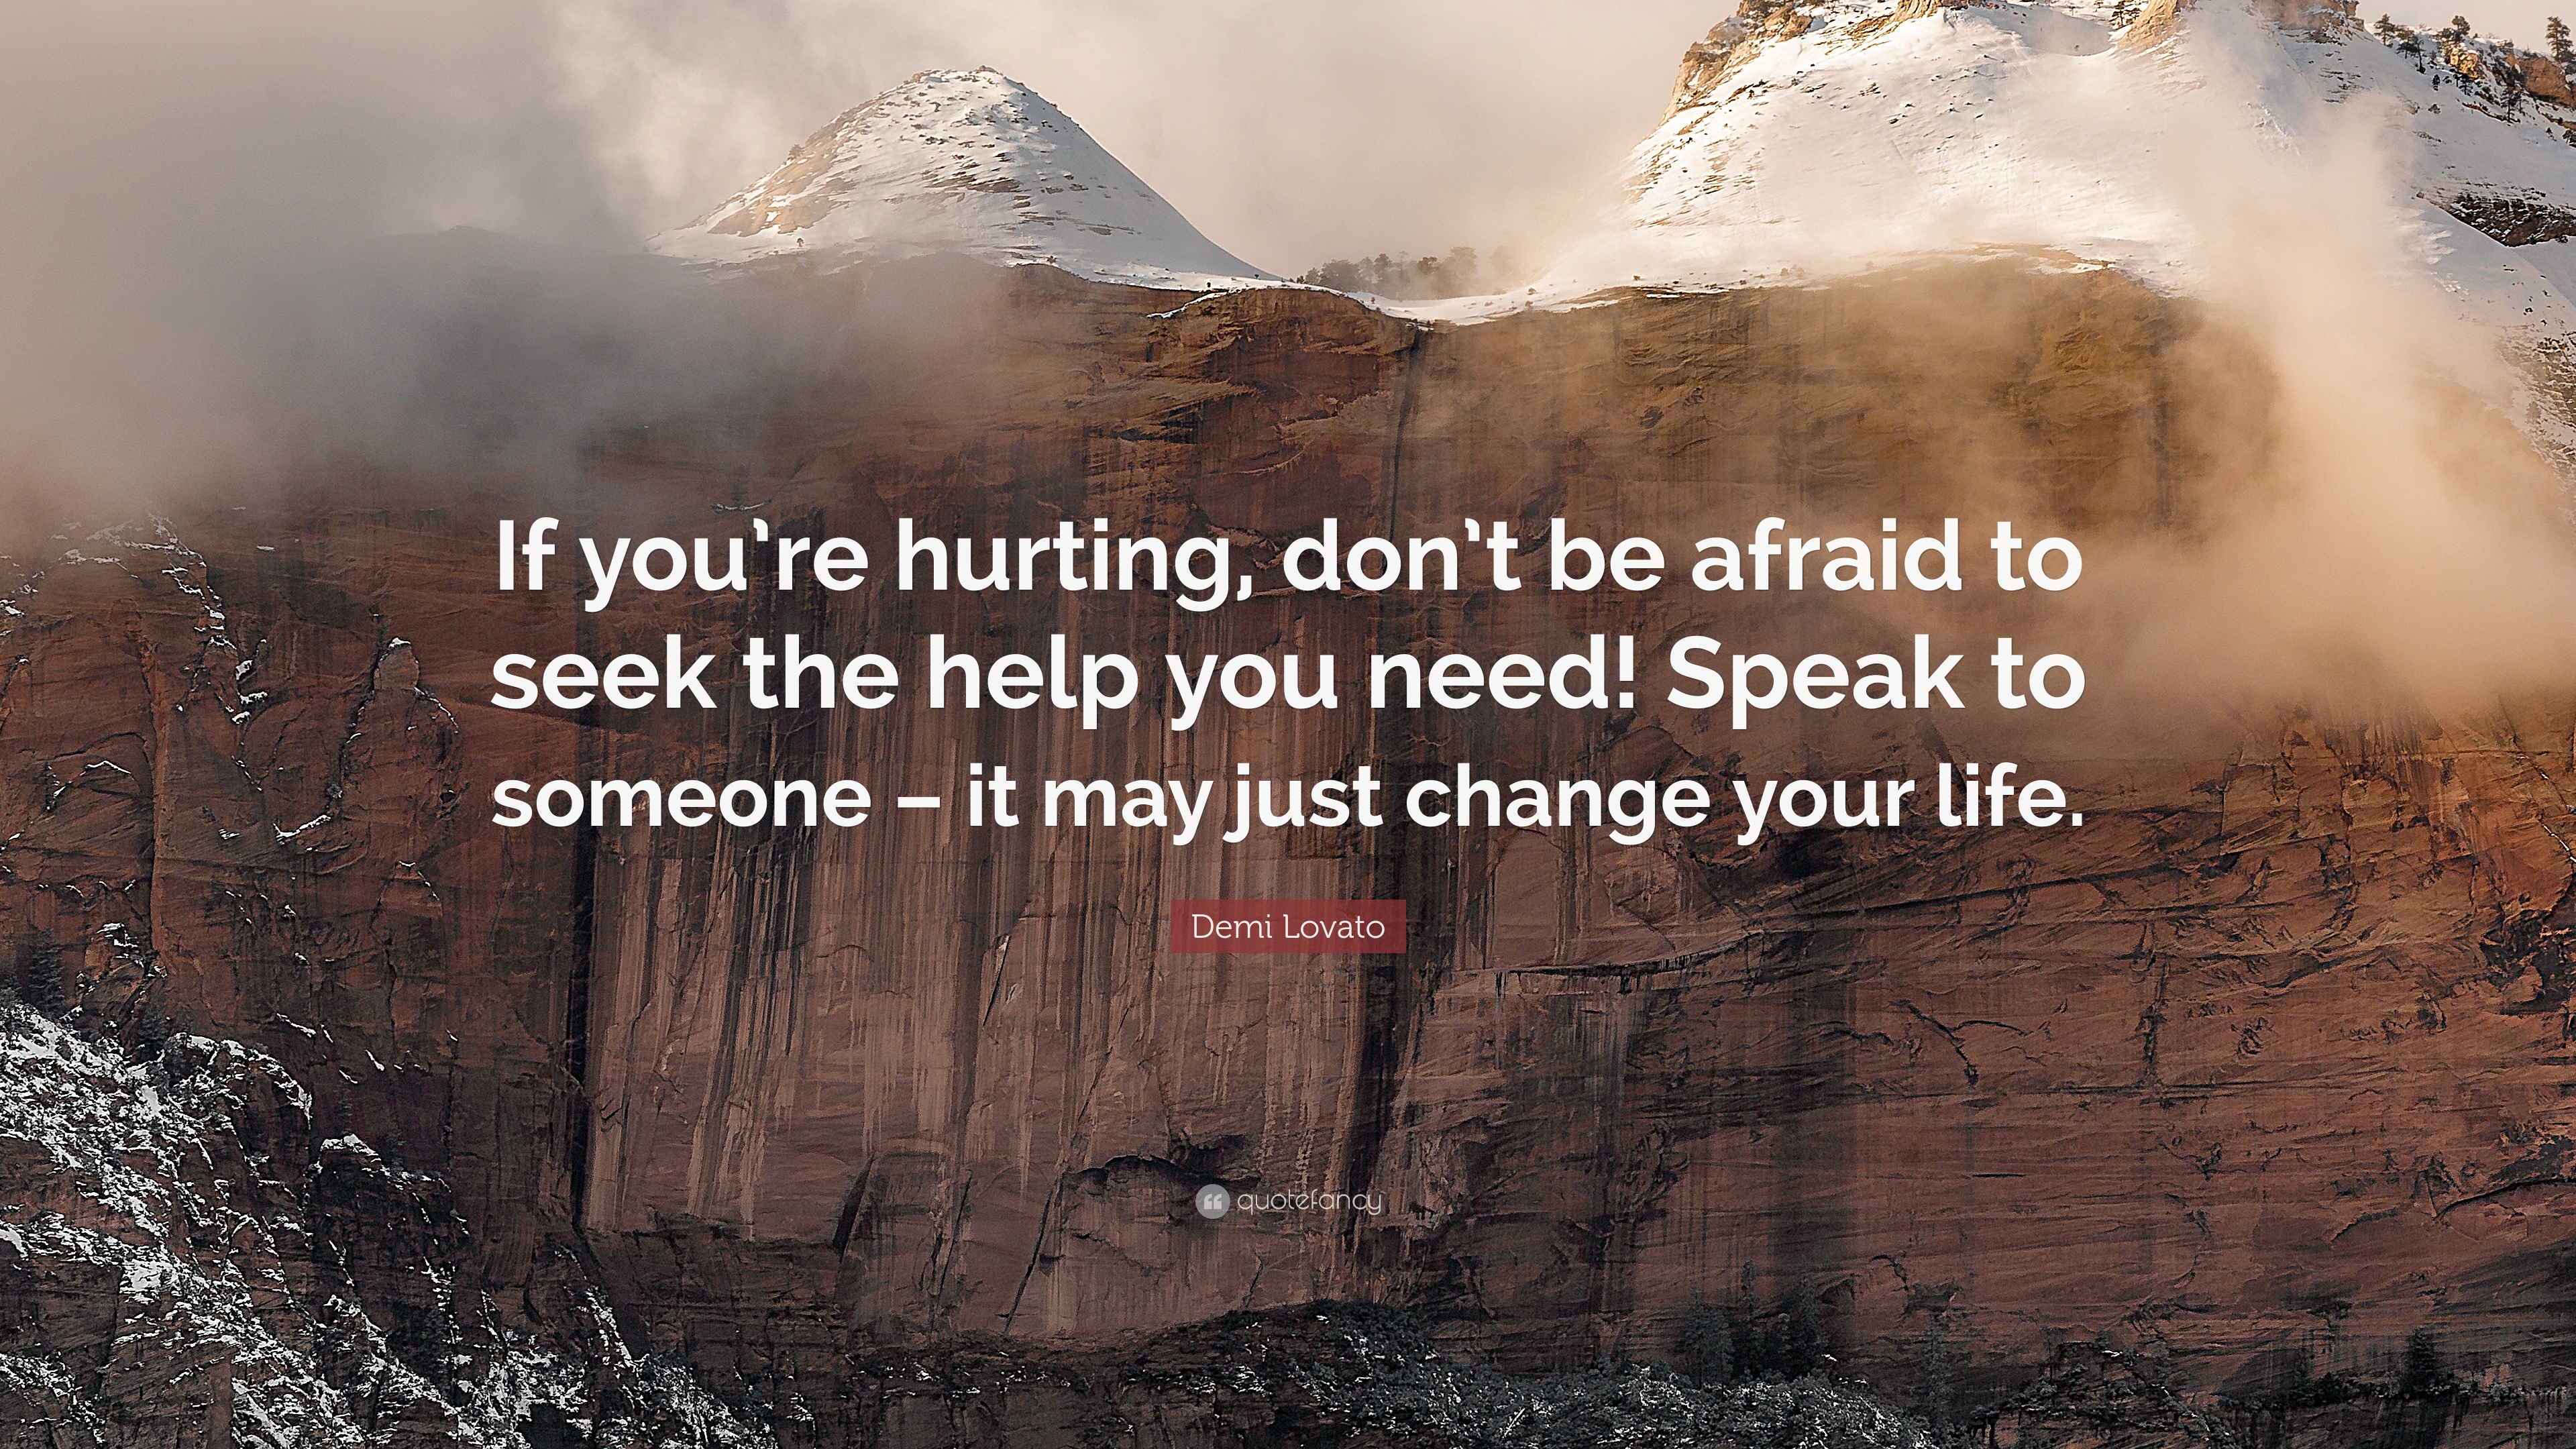 """Quotes About Seeking Help: Demi Lovato Quote: """"If You're Hurting, Don't Be Afraid To"""